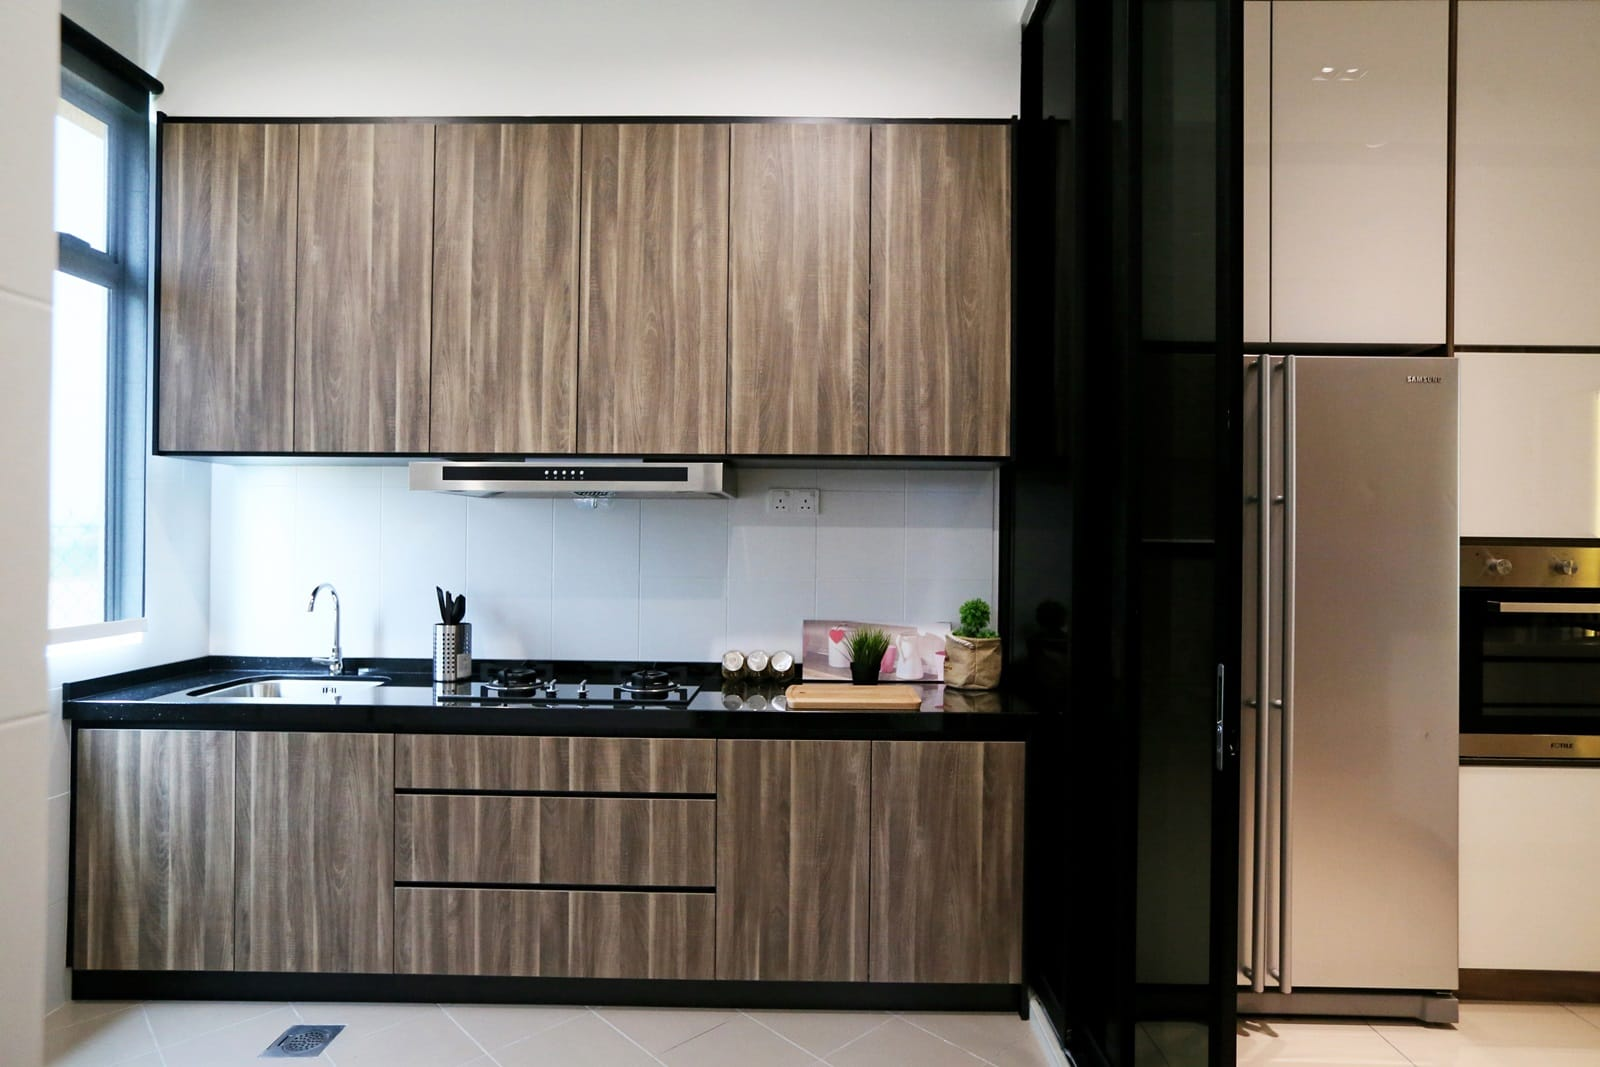 Rimbun vista show unit receives a sleek and stylish touch for Terrace kitchen design